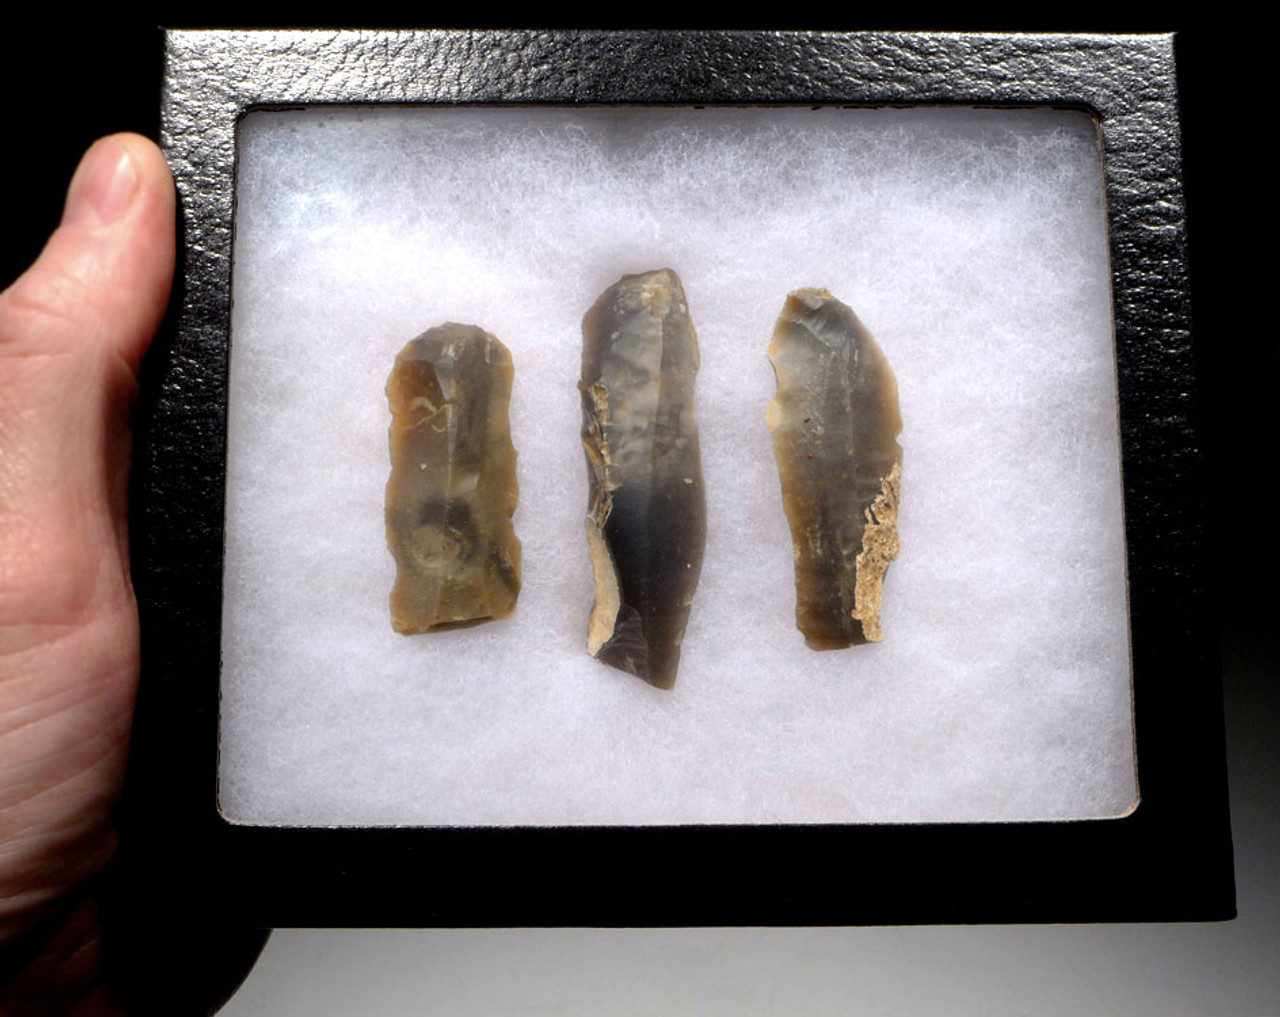 THREE EUROPEAN NEOLITHIC OMALIEN CULTURE FLINT STRUCK BLADE TOOLS FROM BELGIUM  *N171